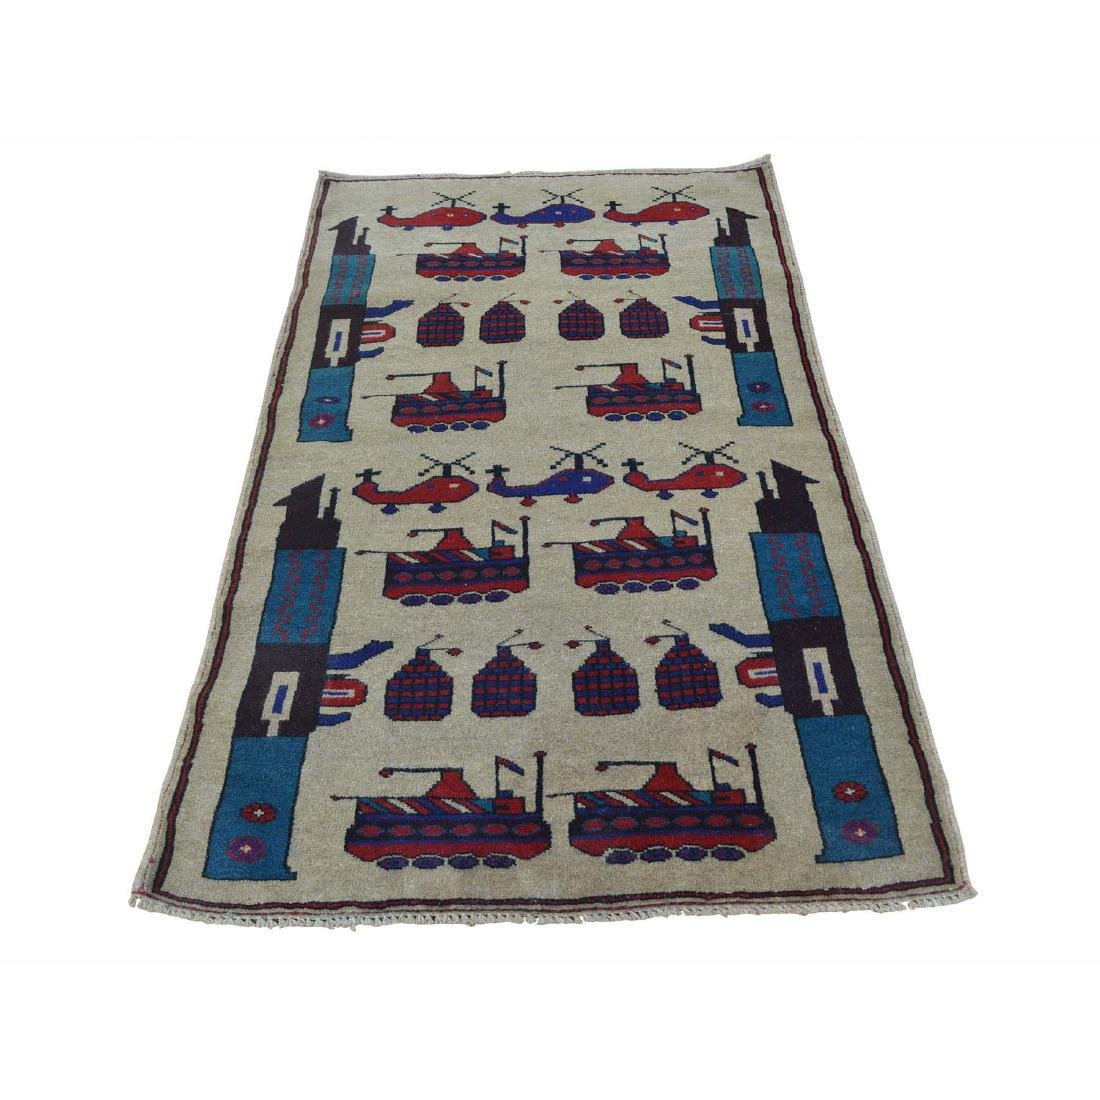 Hand Knotted Afghan Baluch War Tank Grenade Rug 2.9x4.6